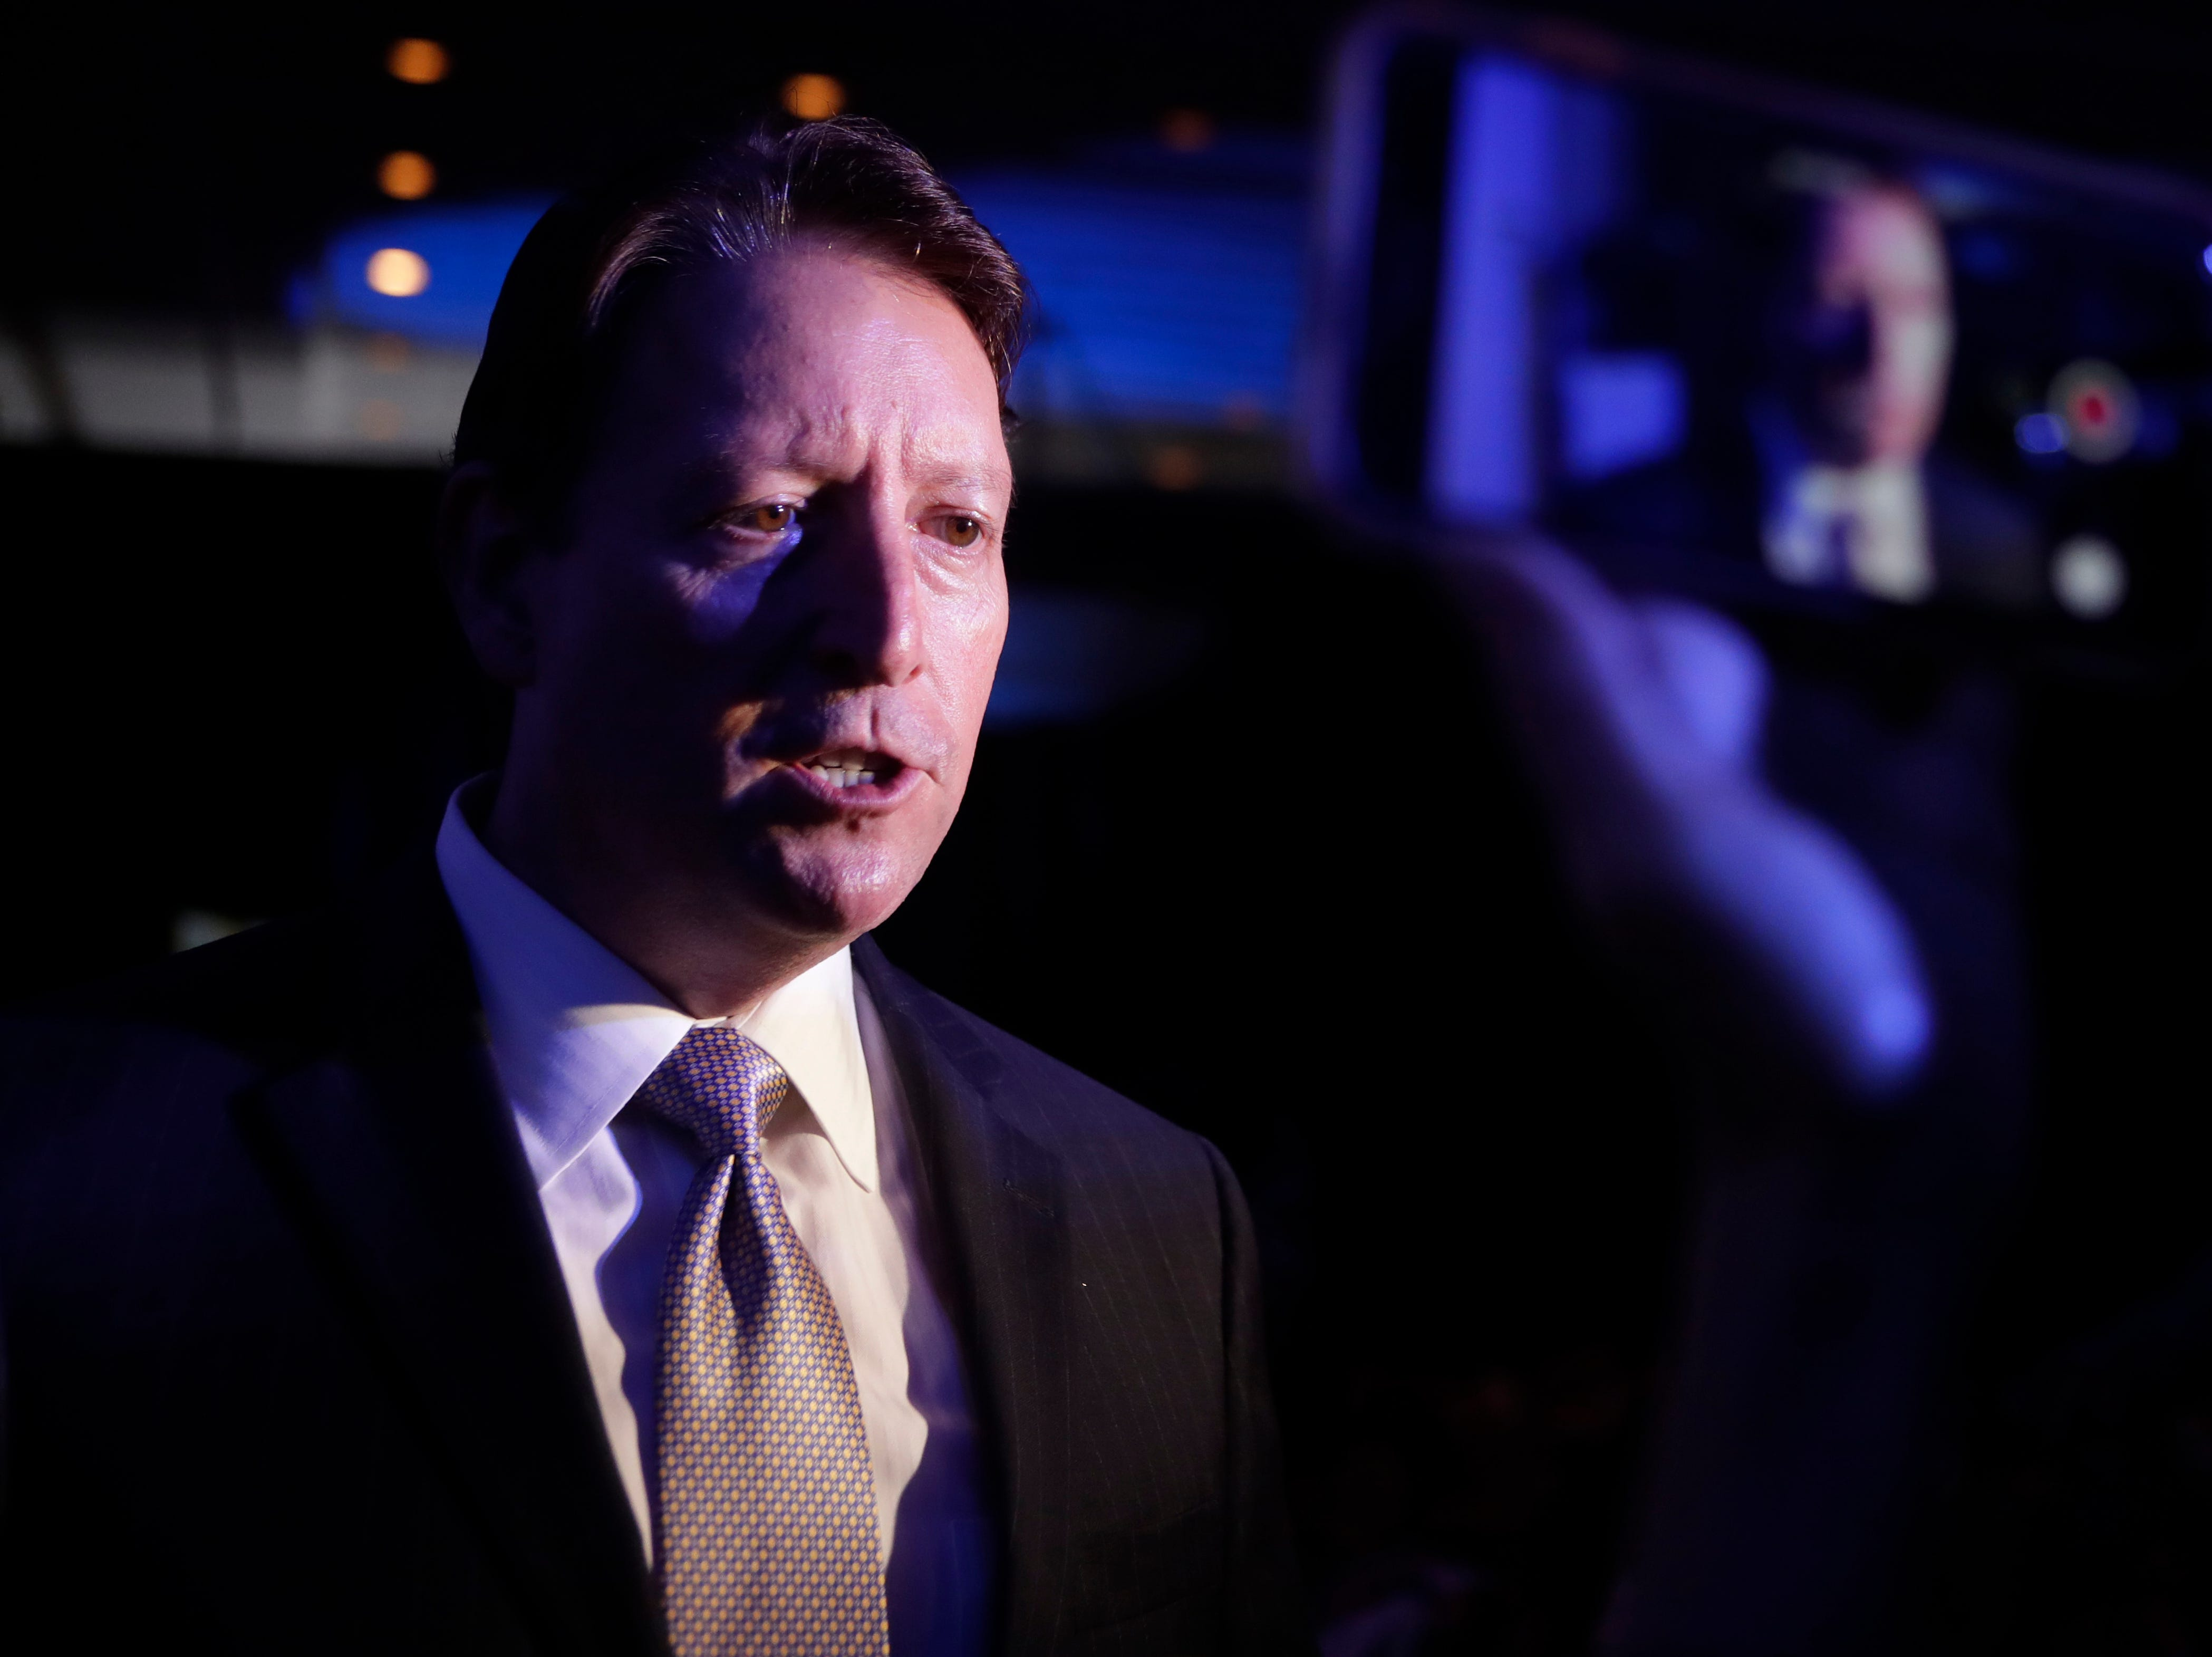 Senate President Bill Galvano is interviewed by the press during the Bold Vision for a Bright Future: Thought Leaders Luncheon in the University Center Club at Florida State University Monday, Jan. 7, 2019.